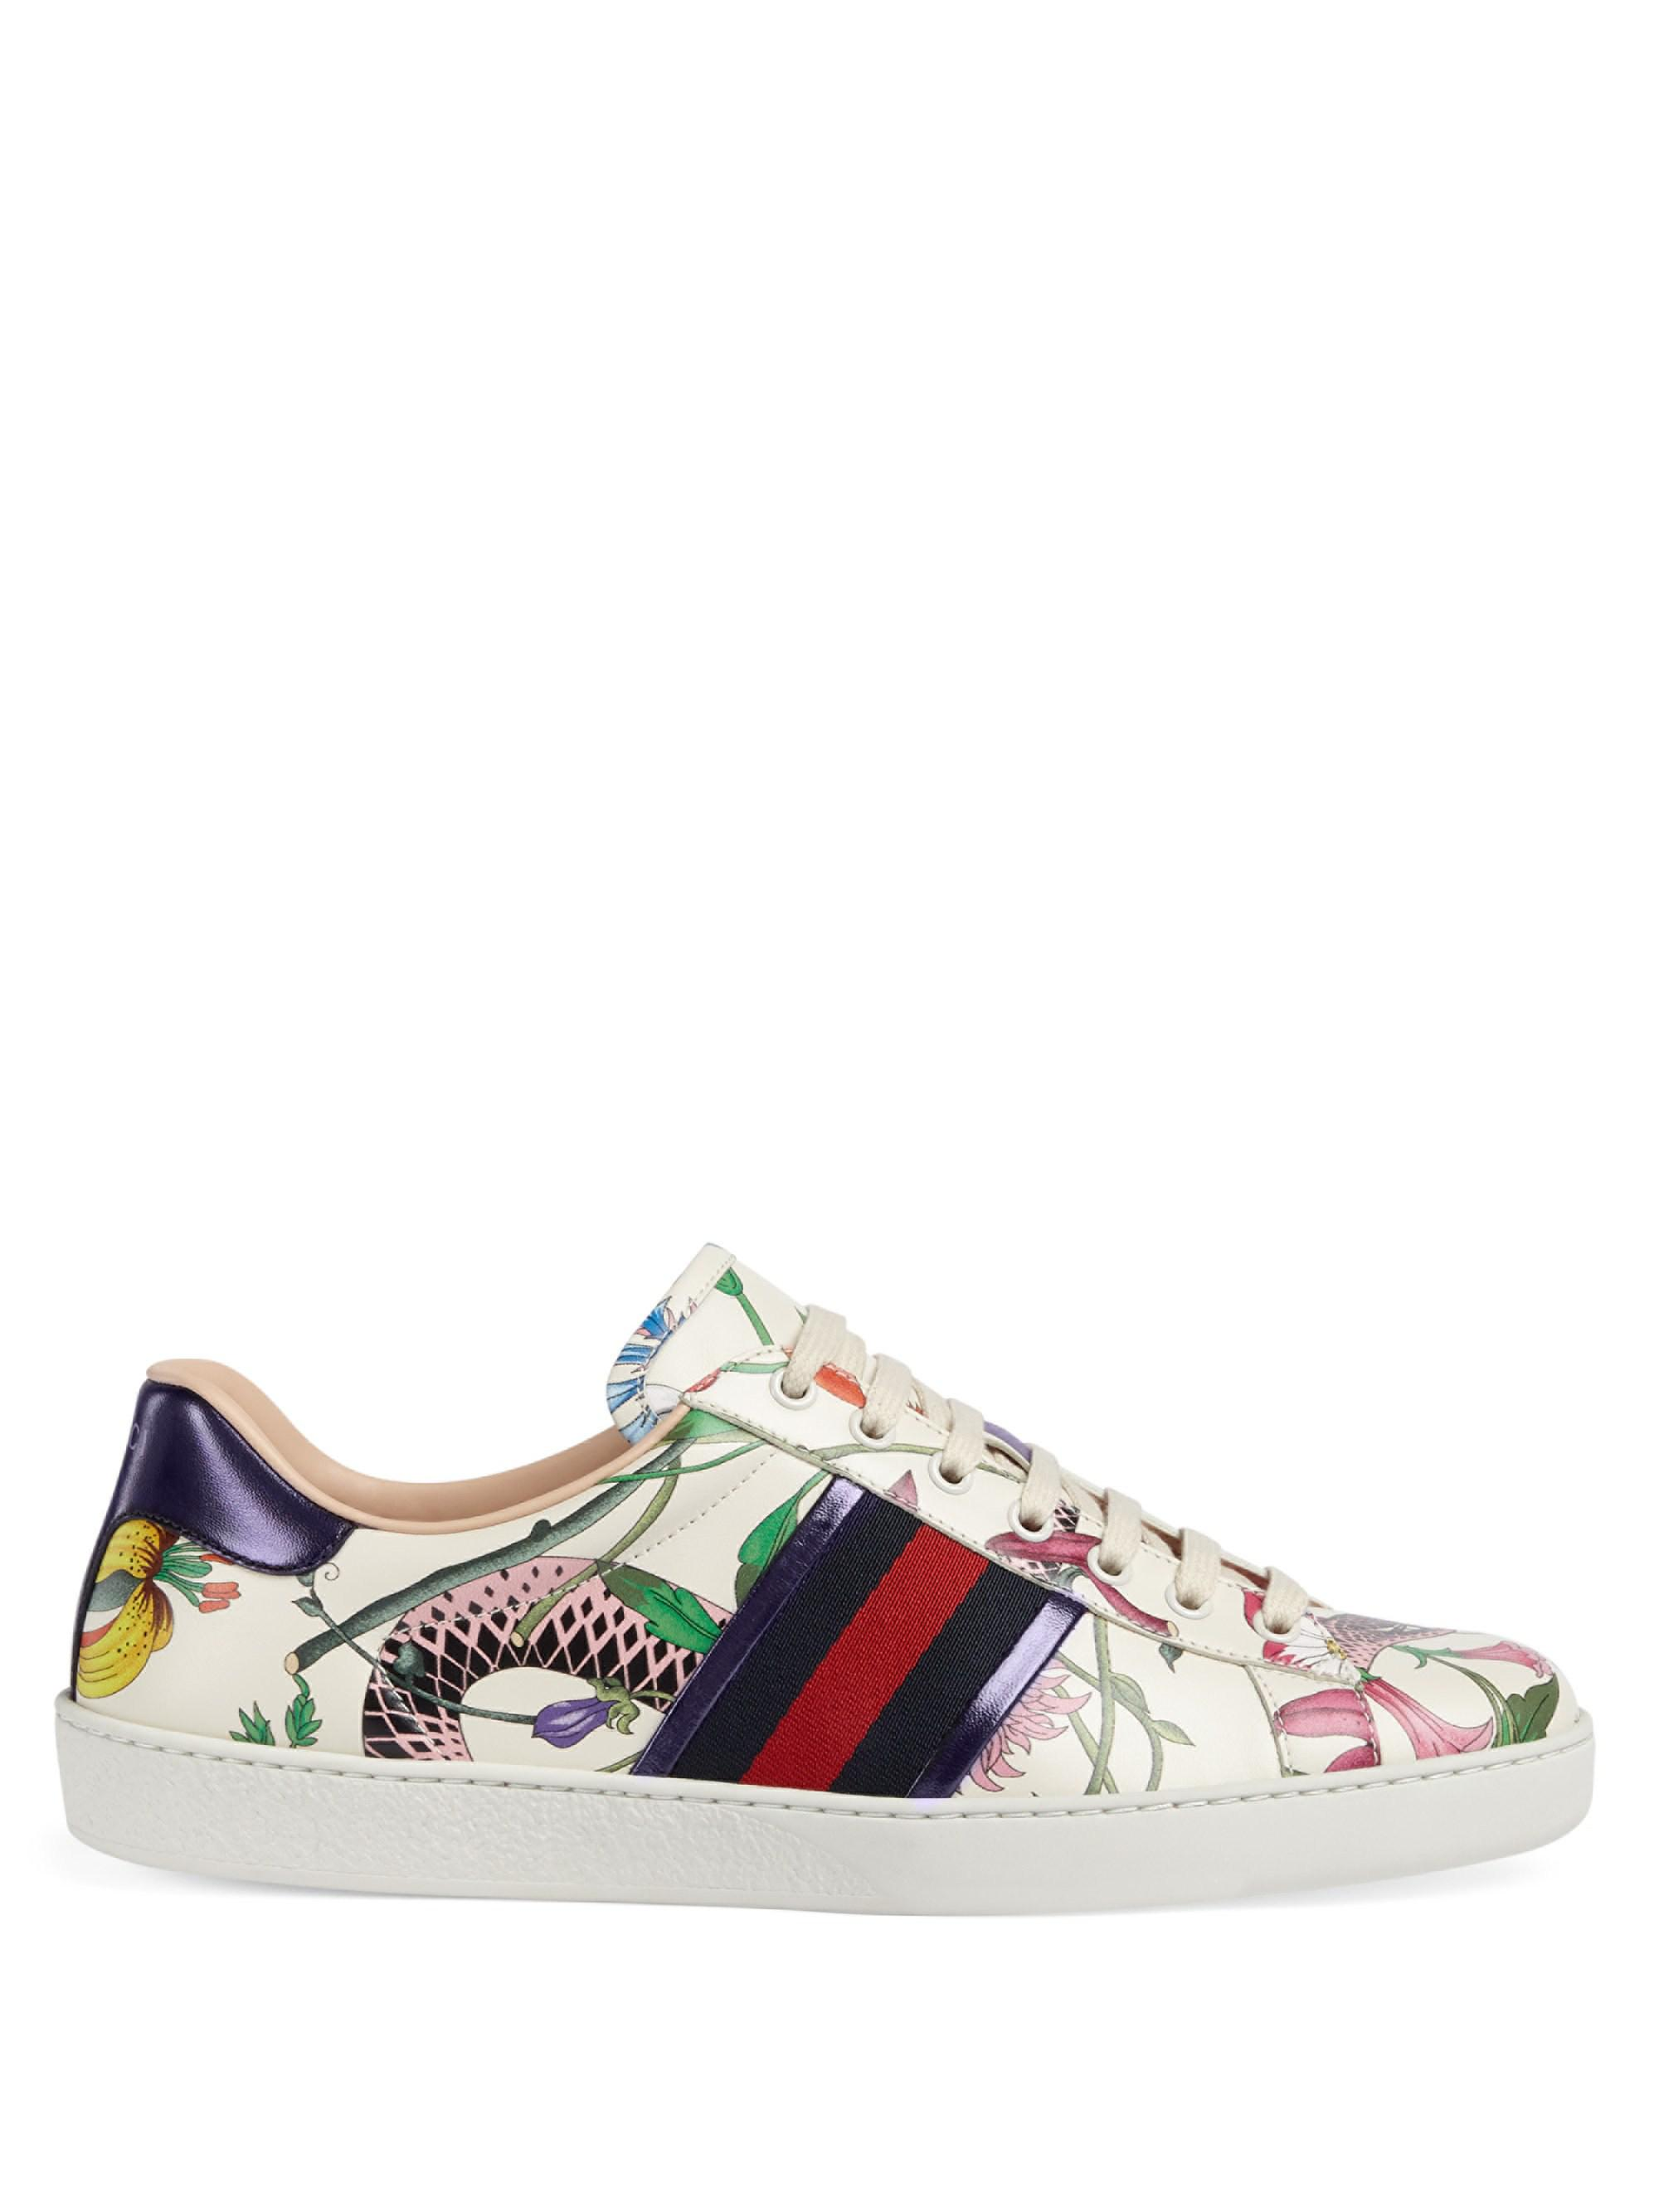 37b7409288091 Lyst - Gucci Men s New Ace Flora Snake Sneakers - White Multi - Size ...